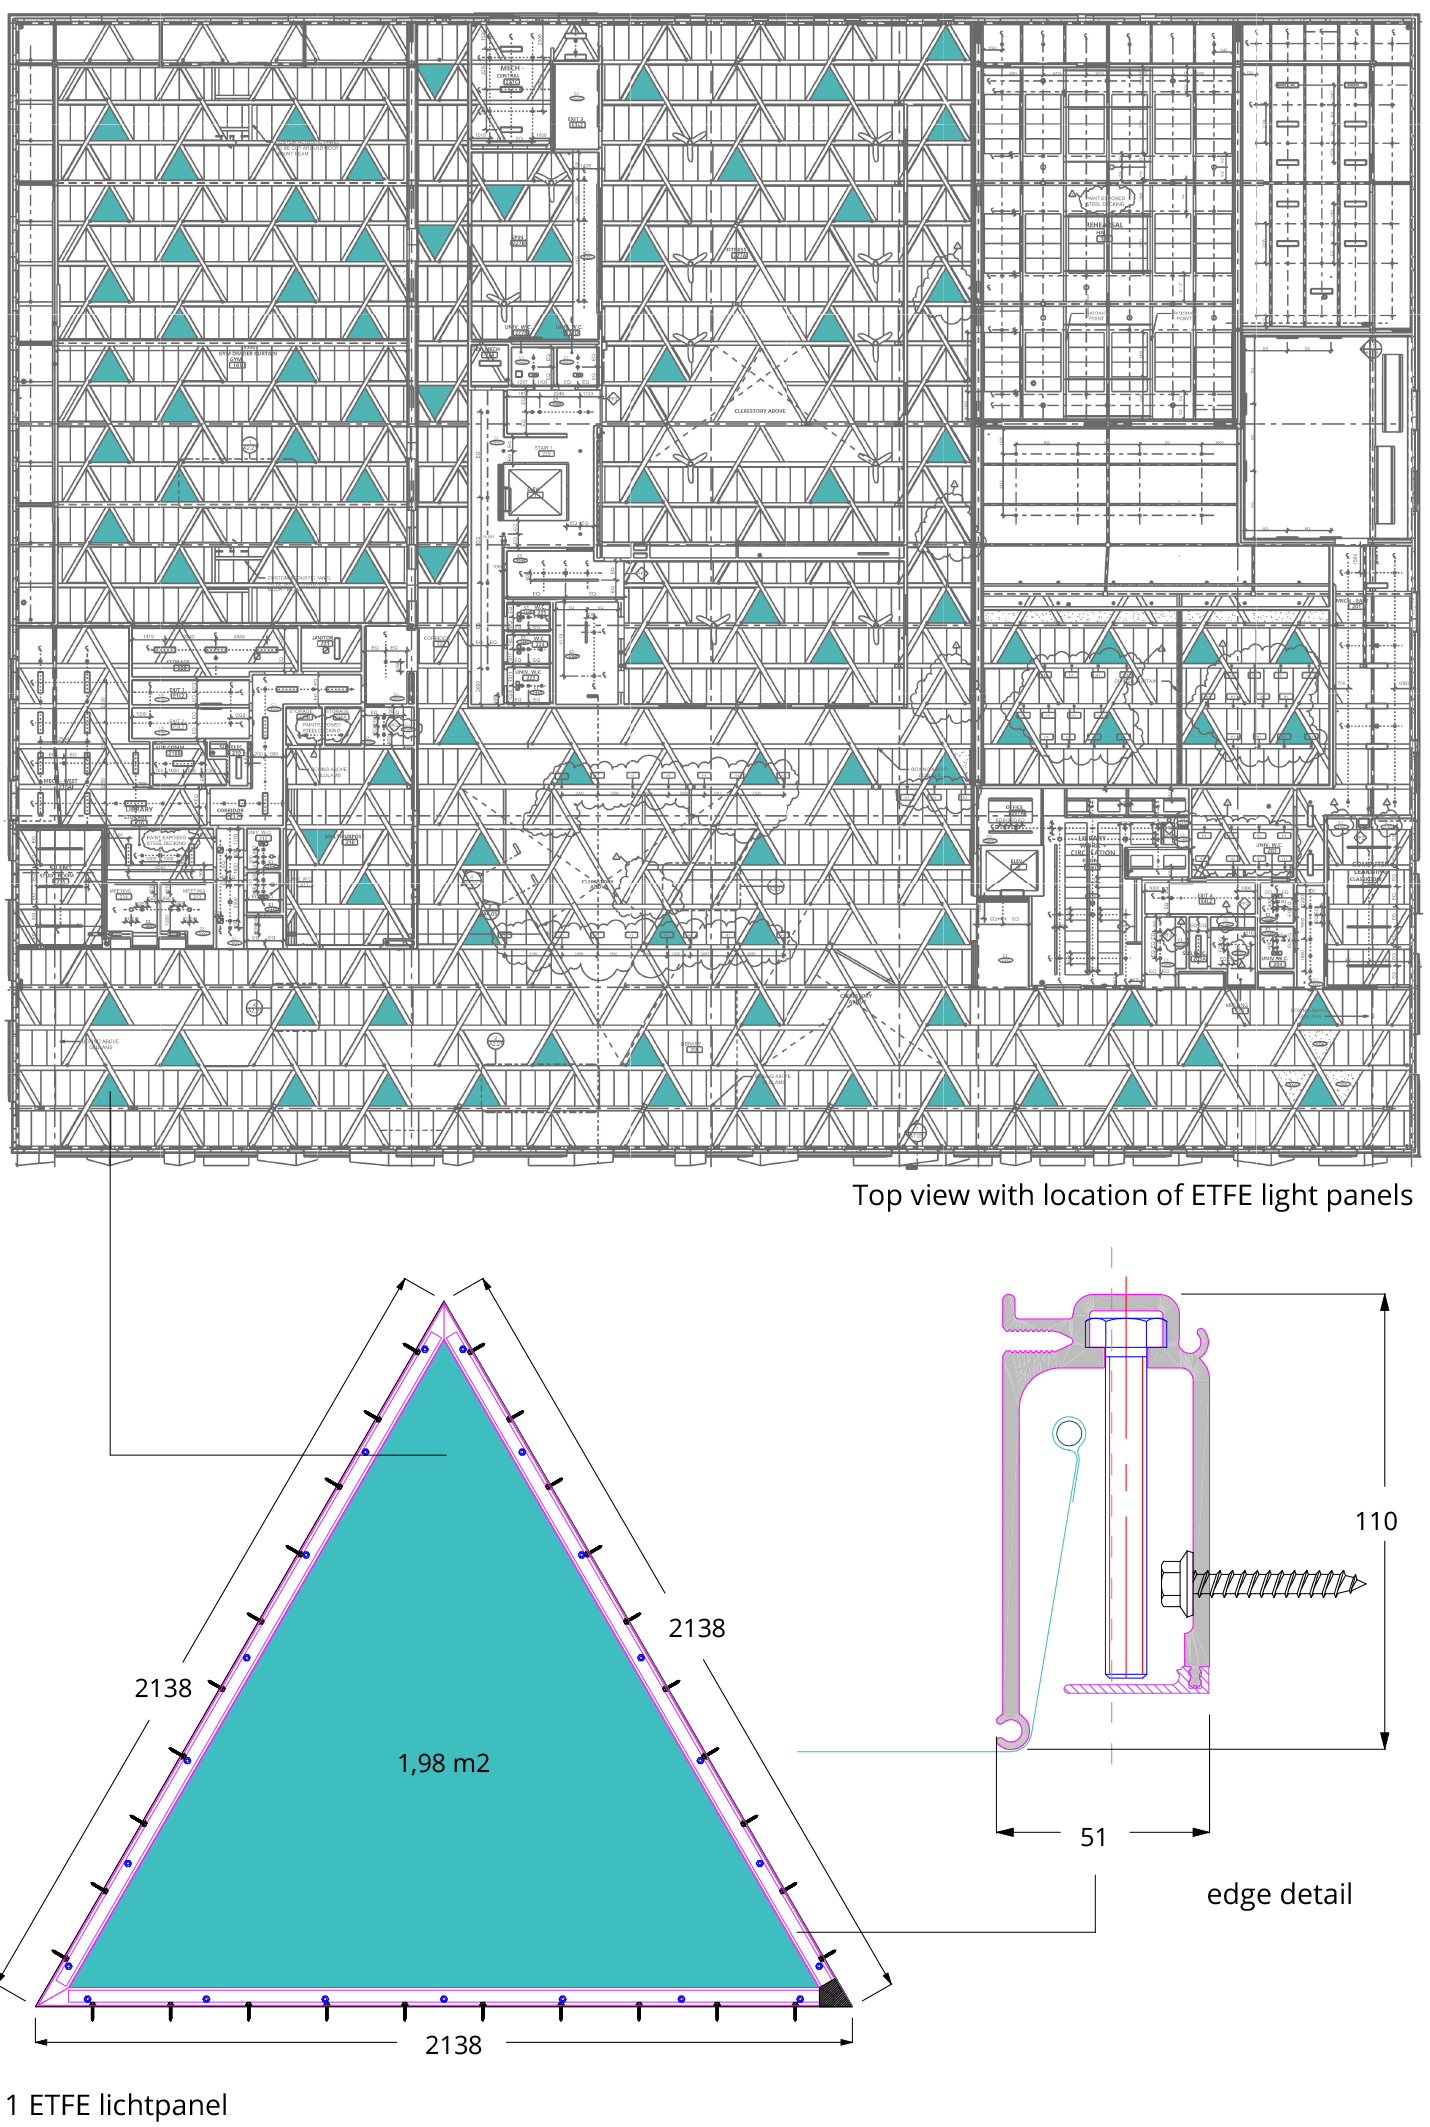 engineering_ETFE_light_ceilings.png